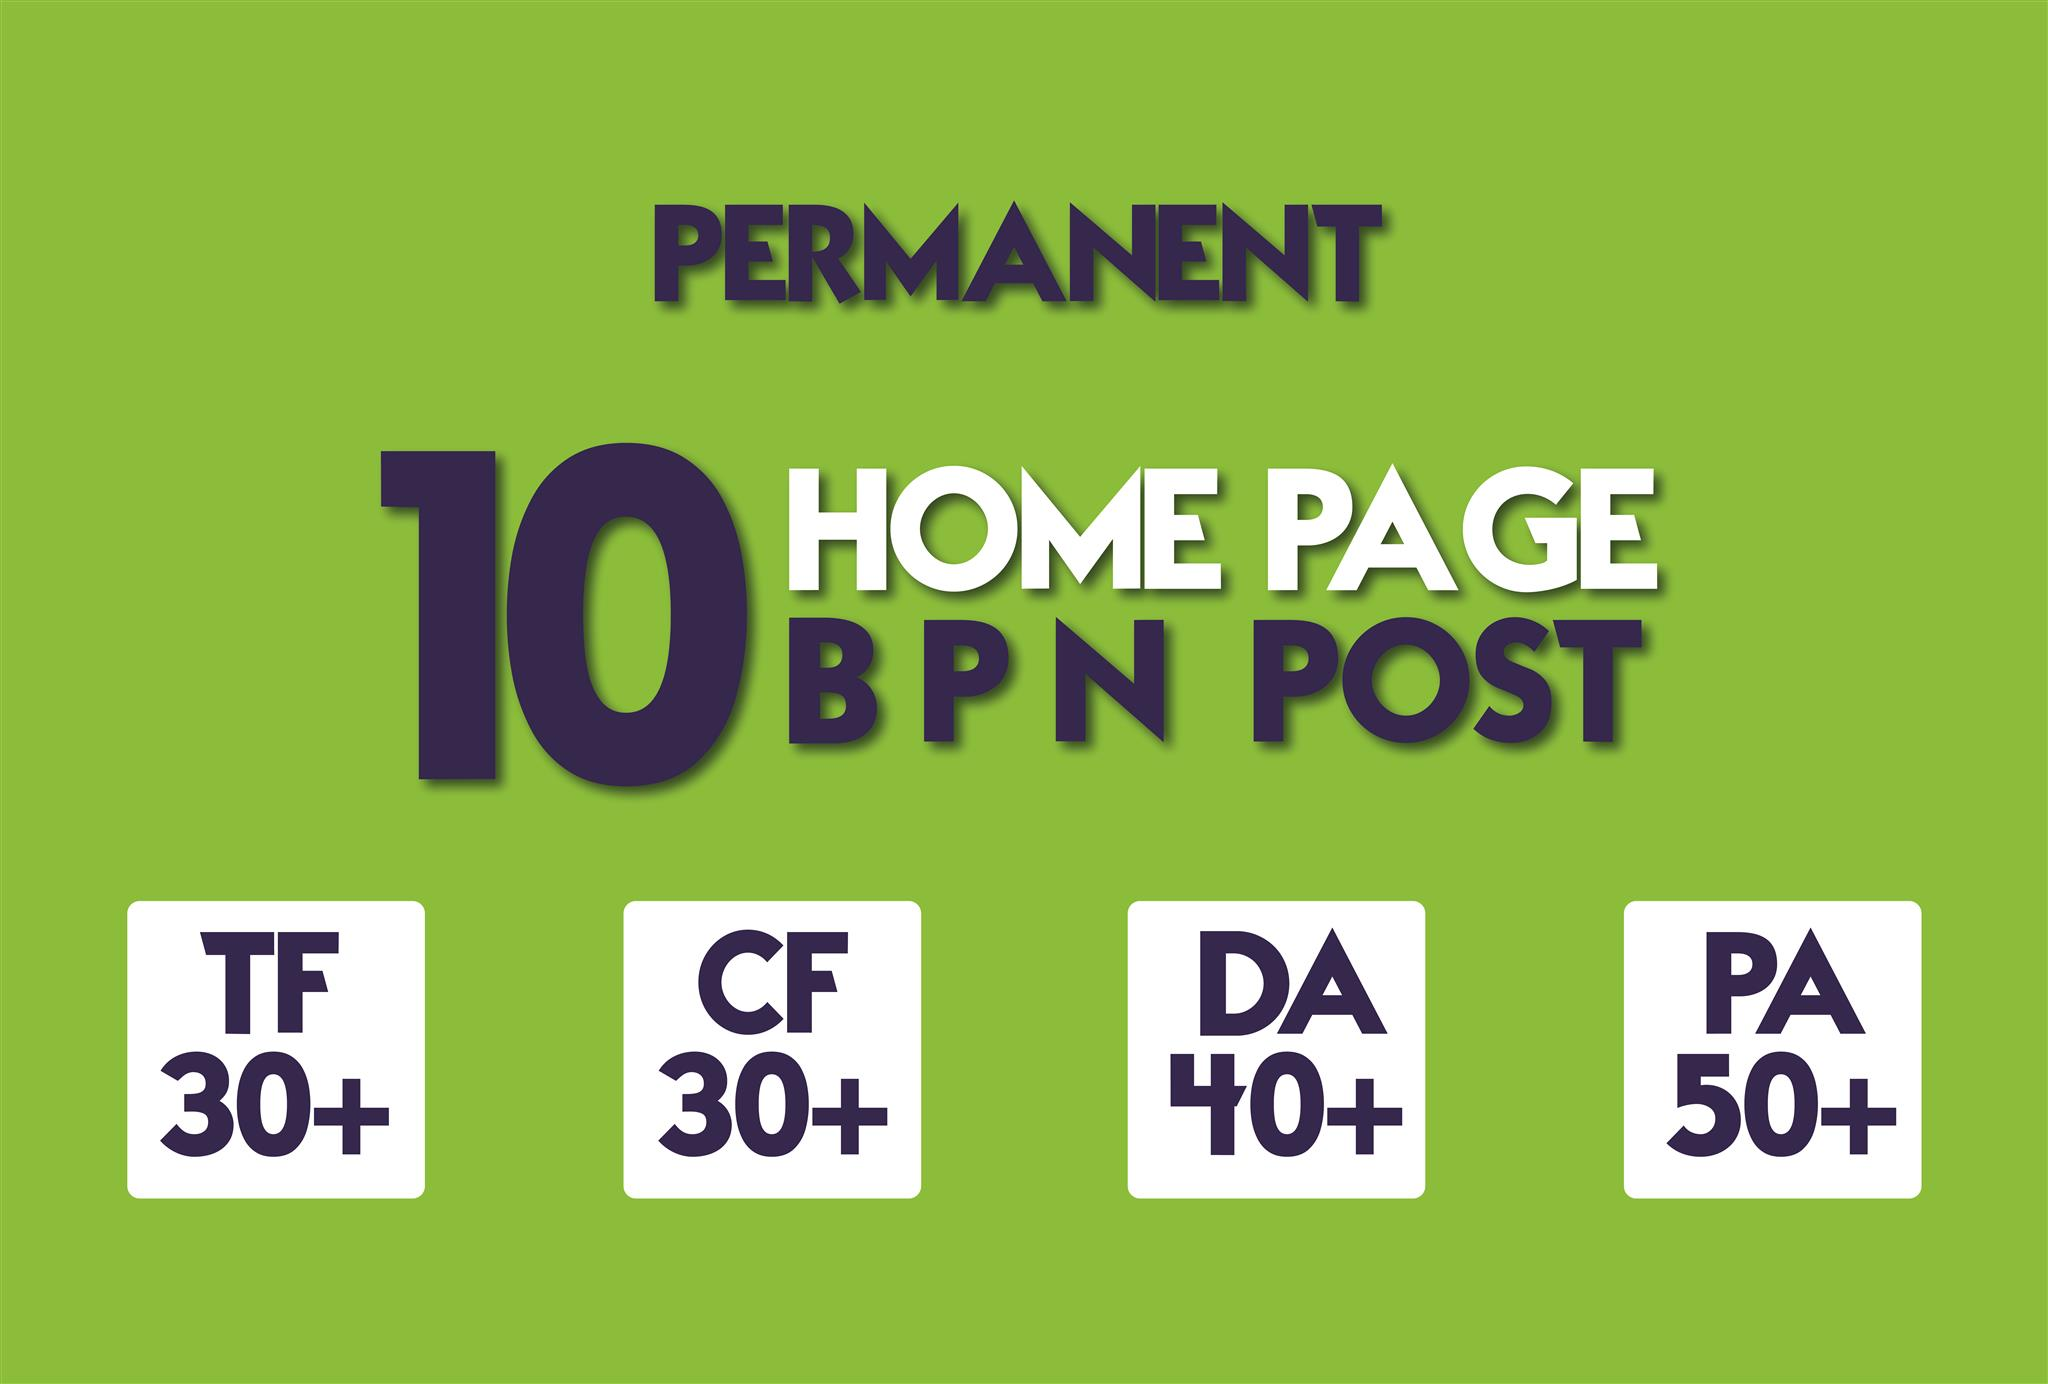 Create 10 Manual HIGH TF CF 20+ DA 35+ PA 45+ Dofollow PBN Backlinks